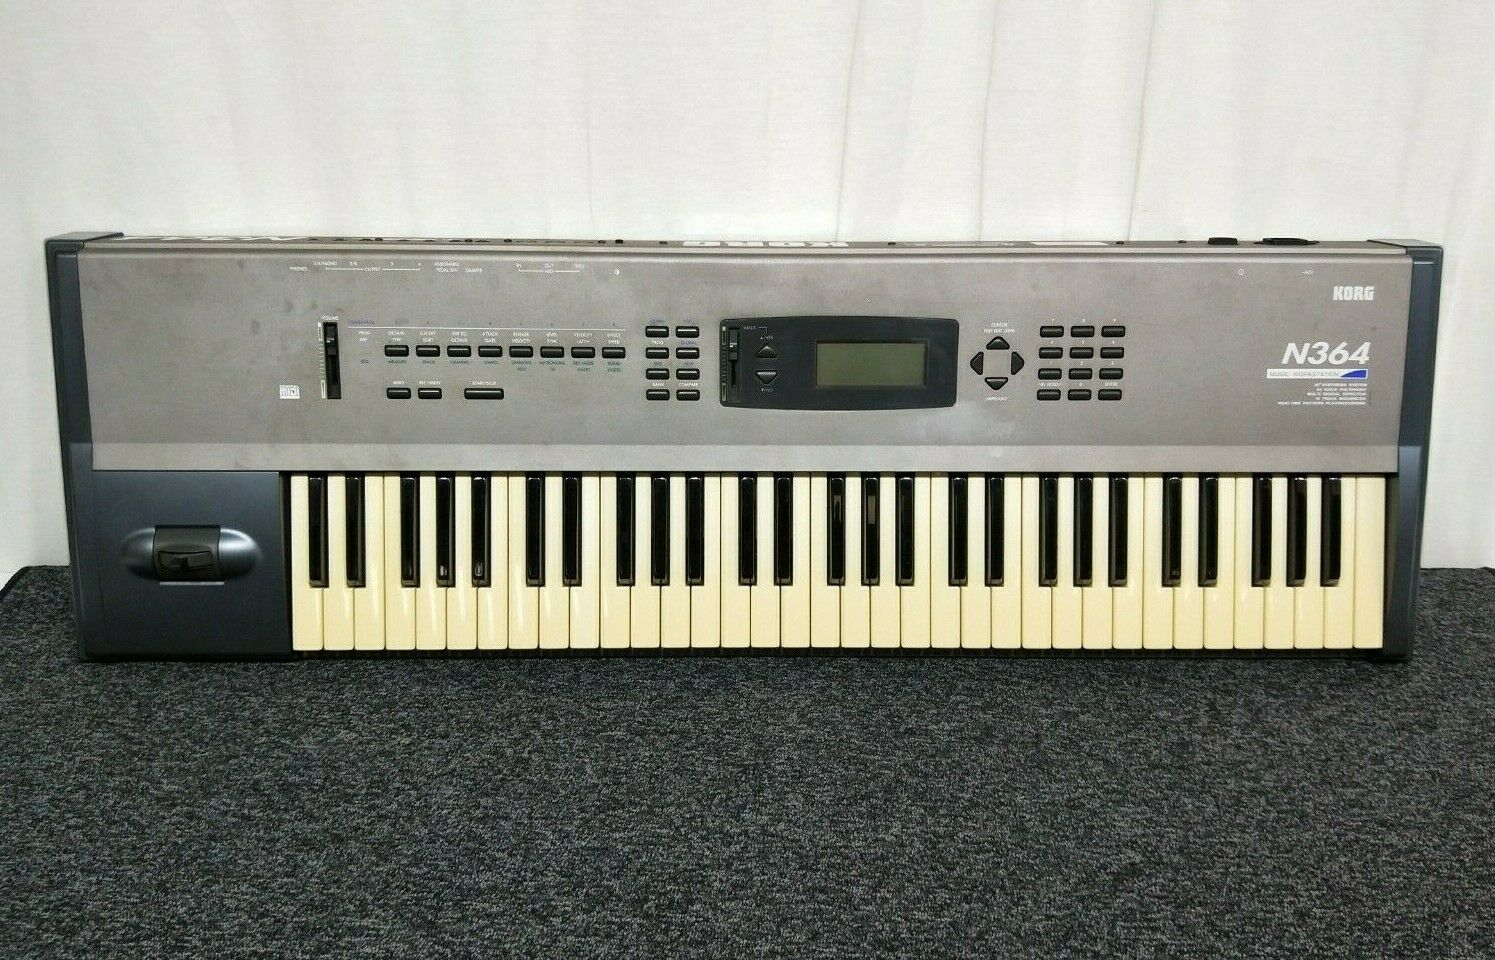 Korg N364 Music Workstation SyntheGrößer in Very Good Condition